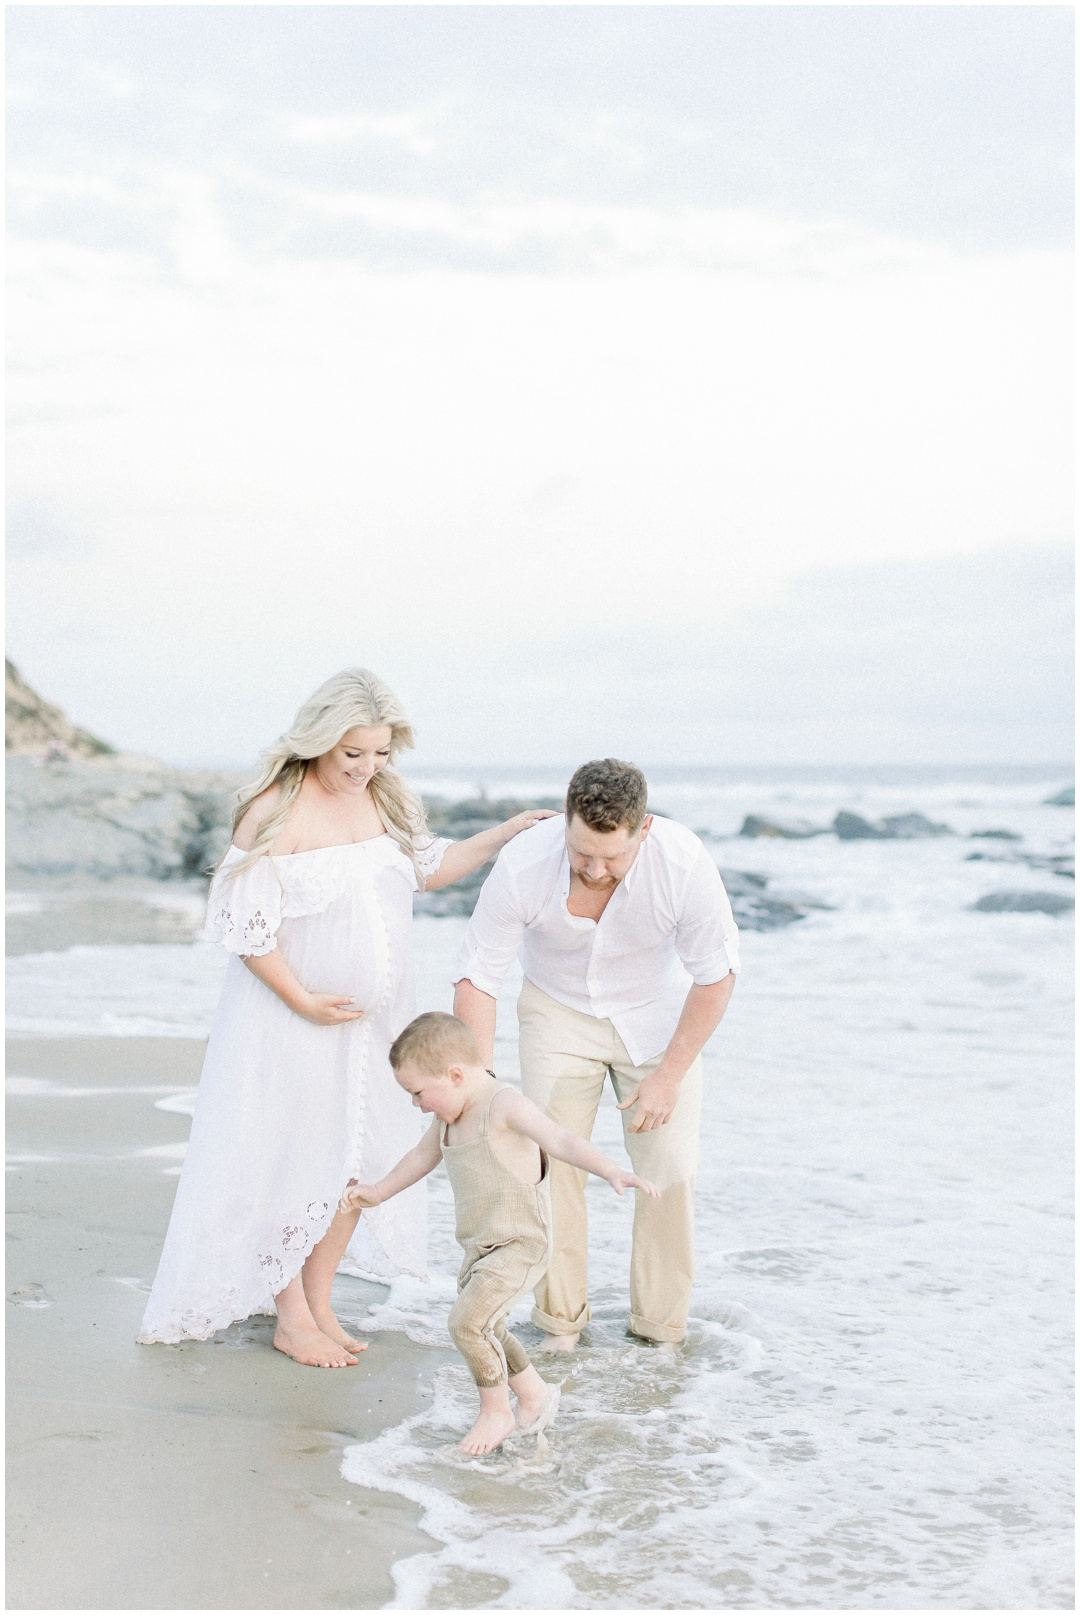 Newport_Beach_Newborn_Light_Airy_Natural_Photographer_Newport_Beach_Photographer_Orange_County_Family_Photographer_Cori_Kleckner_Photography_Newport_Beach_Photographer_Maternity_kole_calhoun56_kole_calhoun_Jennifer_Calhoun_Knox_Calhoun_3715.jpg